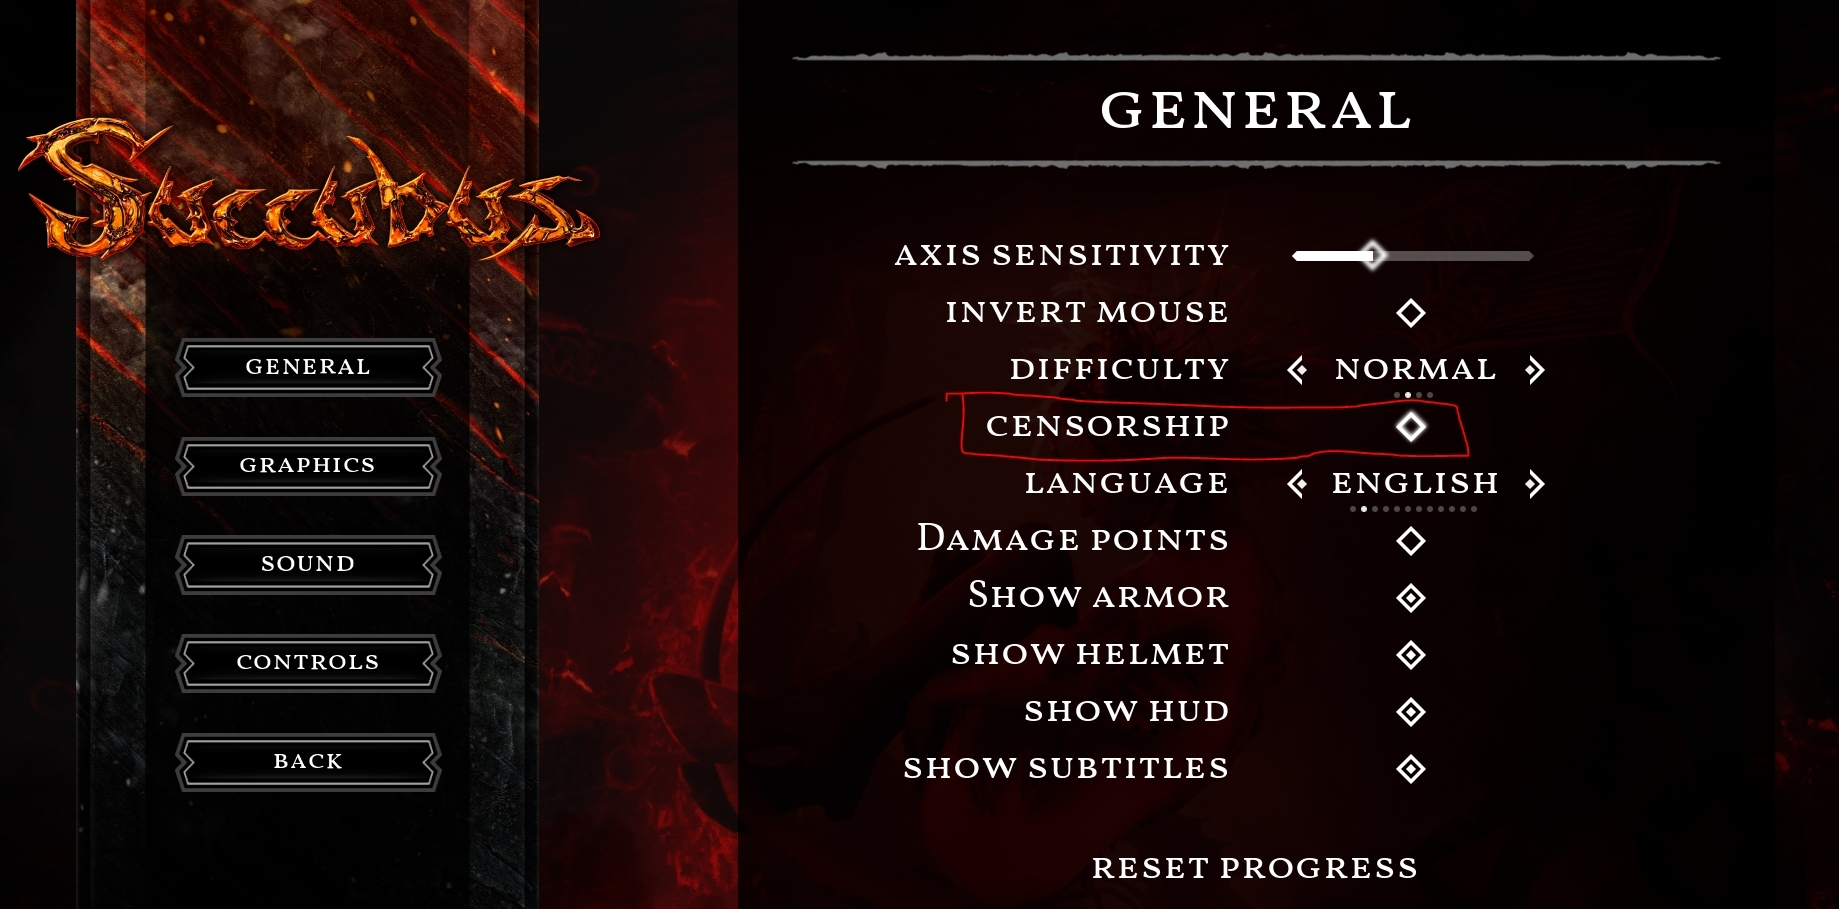 SUCCUBUS - How to Set the Game to Uncensored Guide - Applying the uncensoring ingame - 57C06BD